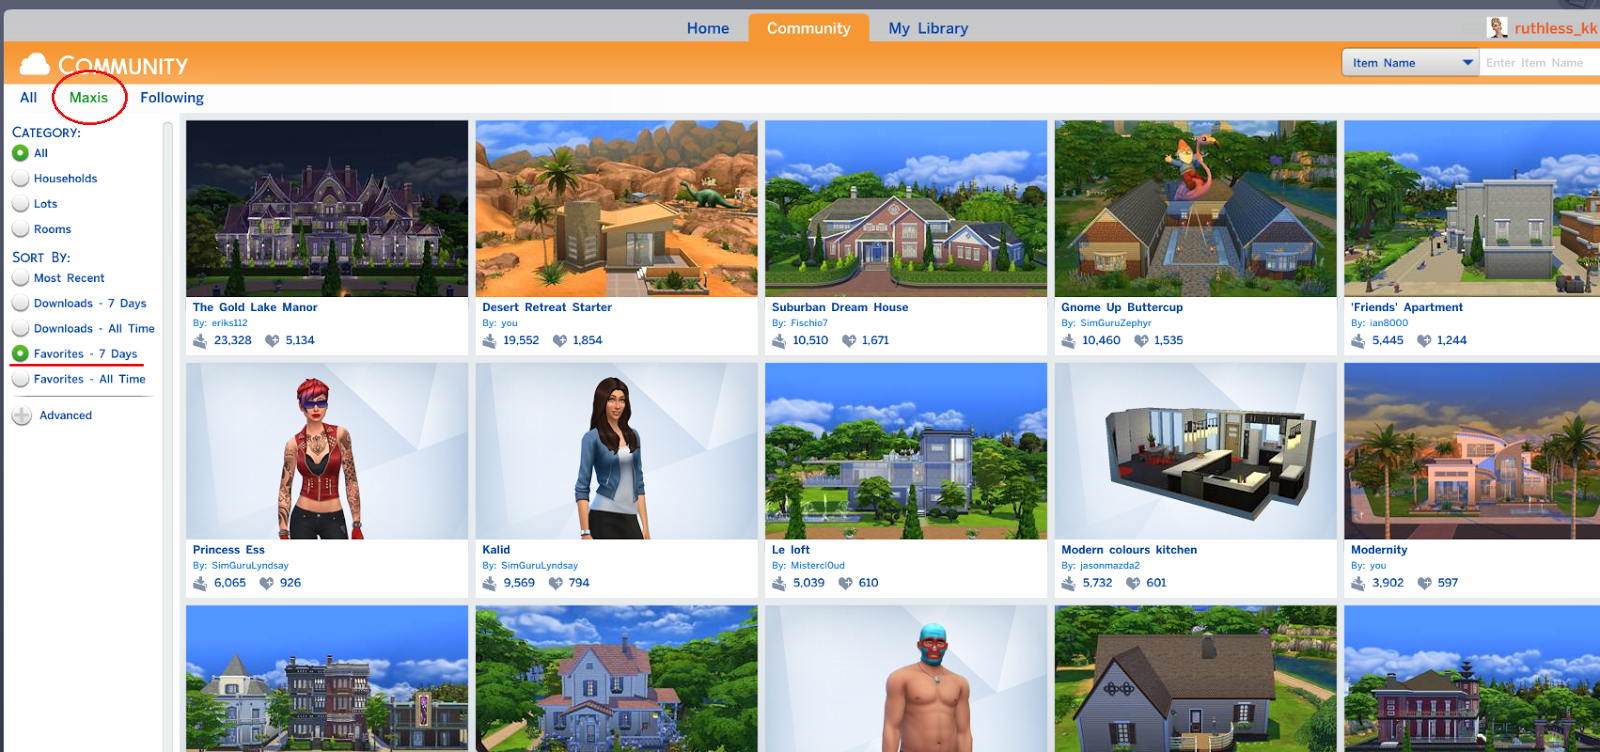 Tutorial: Using The Sims 4 Gallery